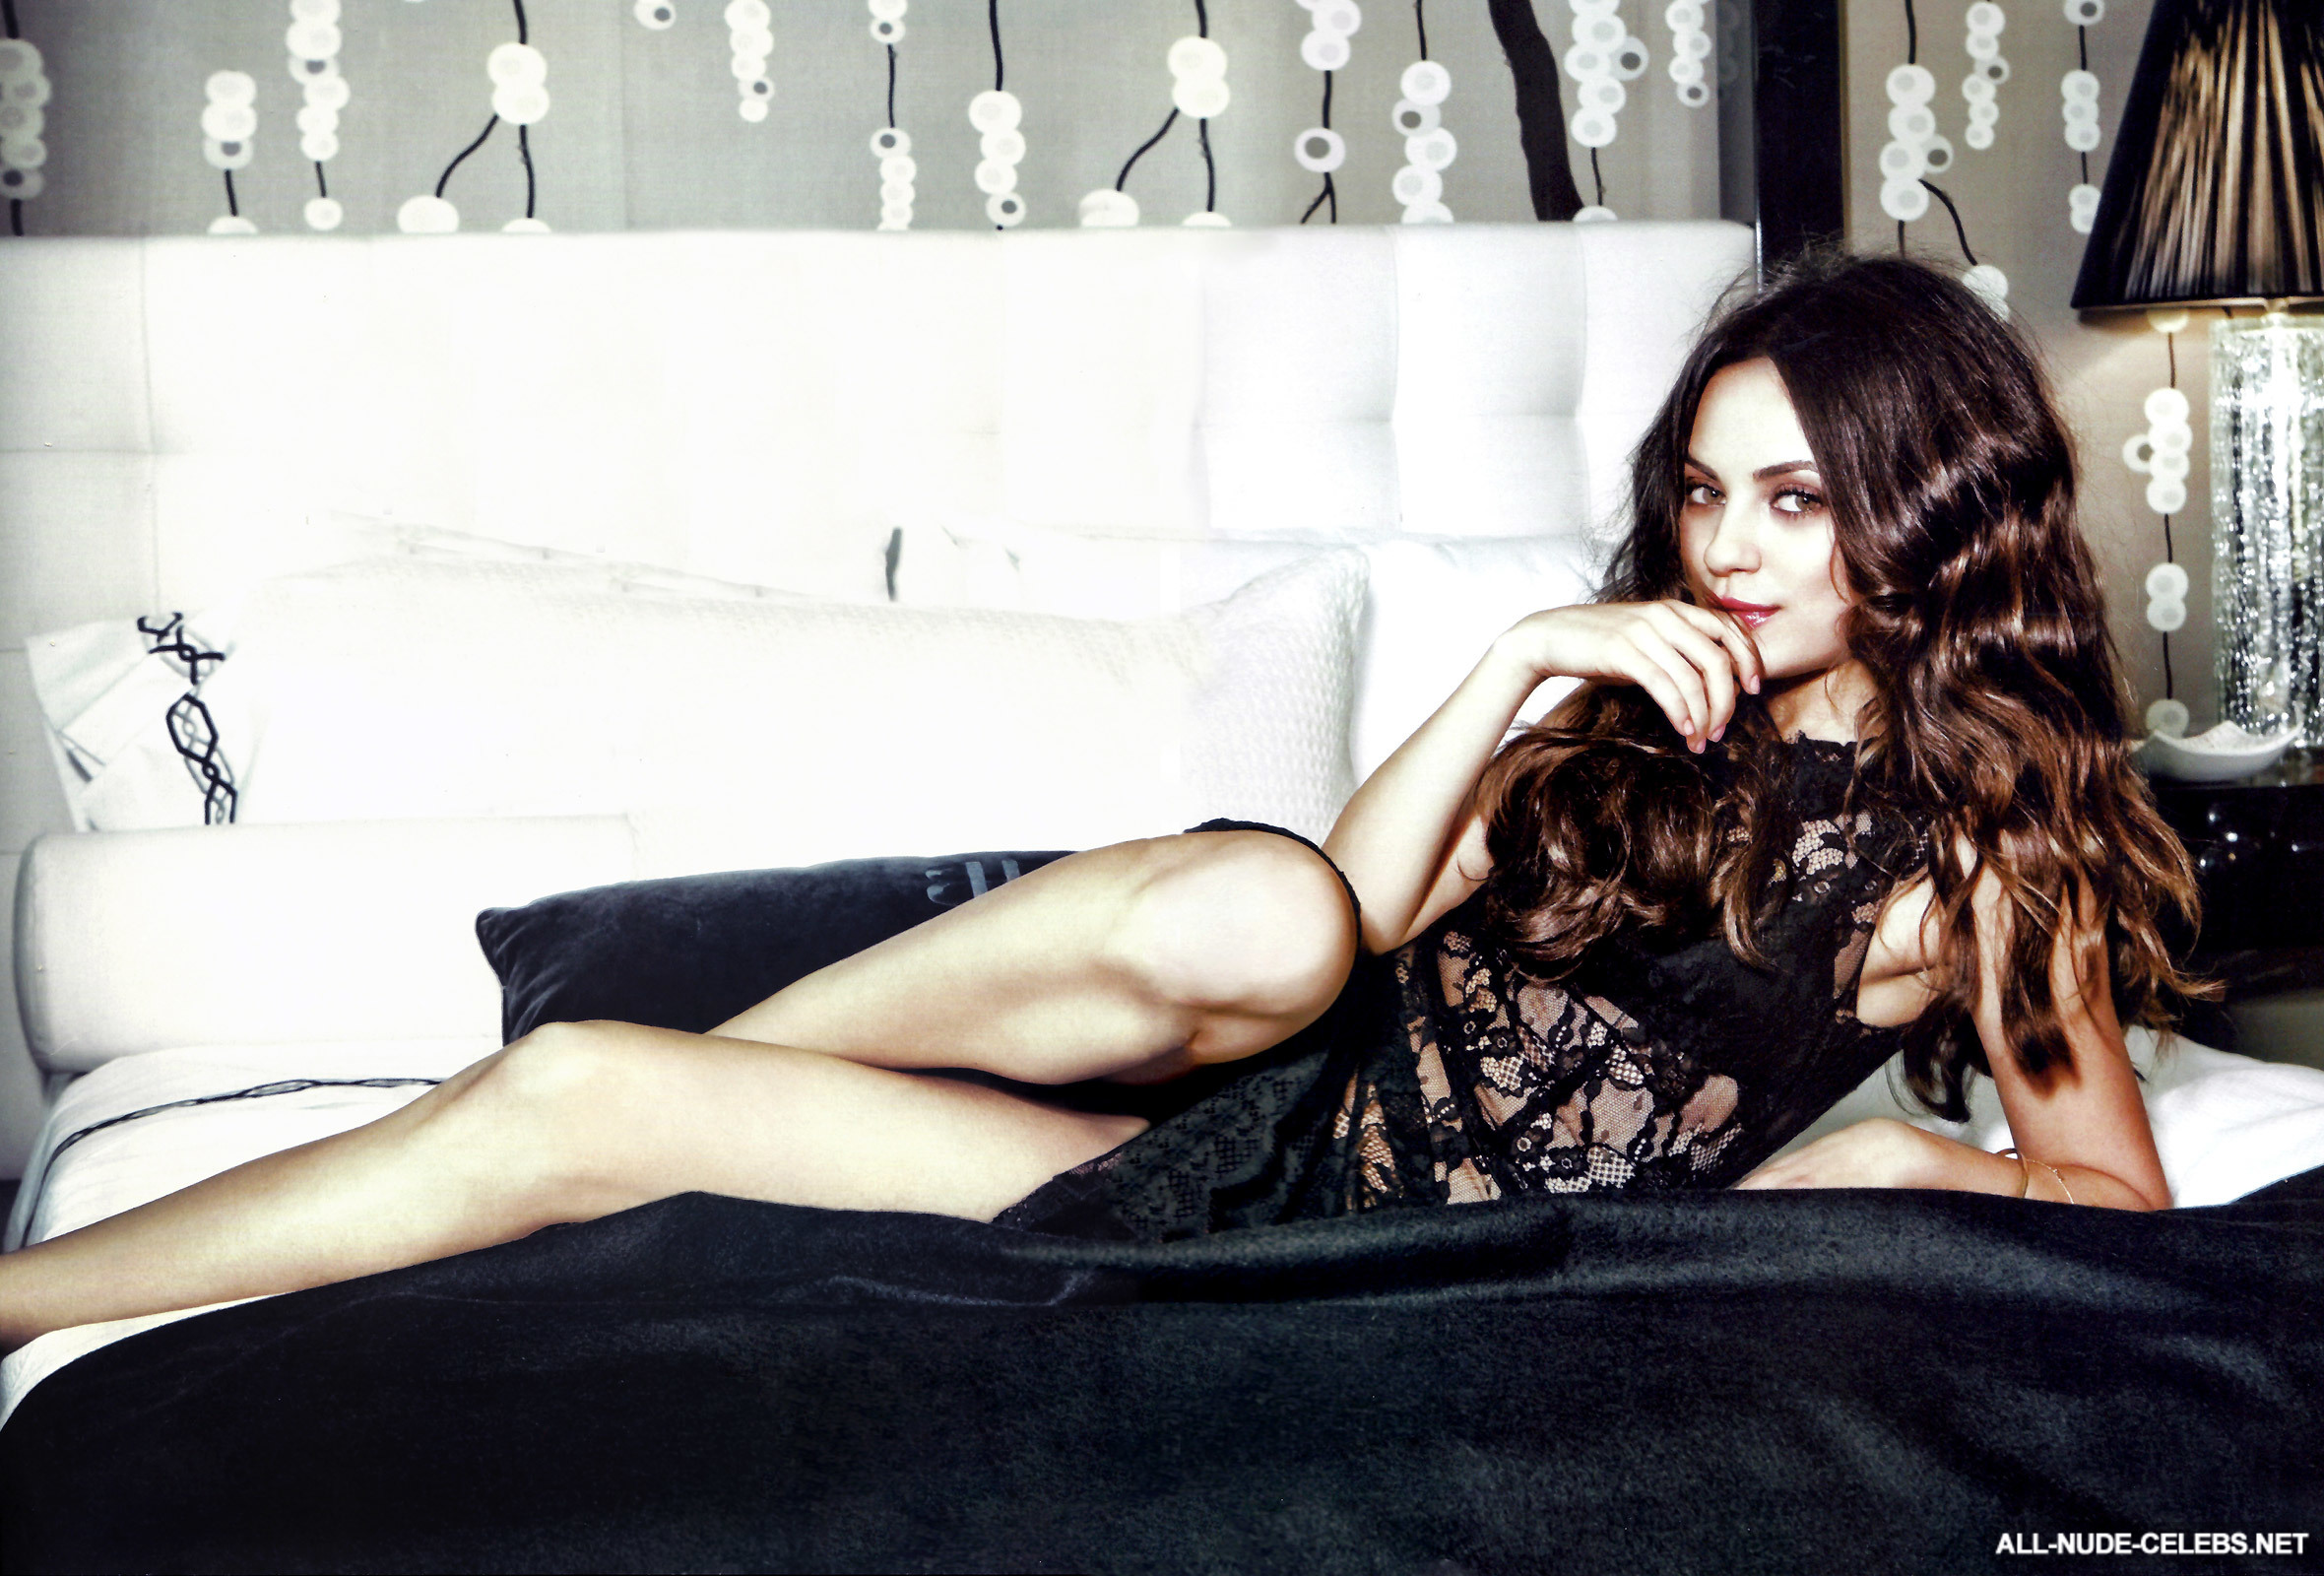 Mila kunis hot and sexy